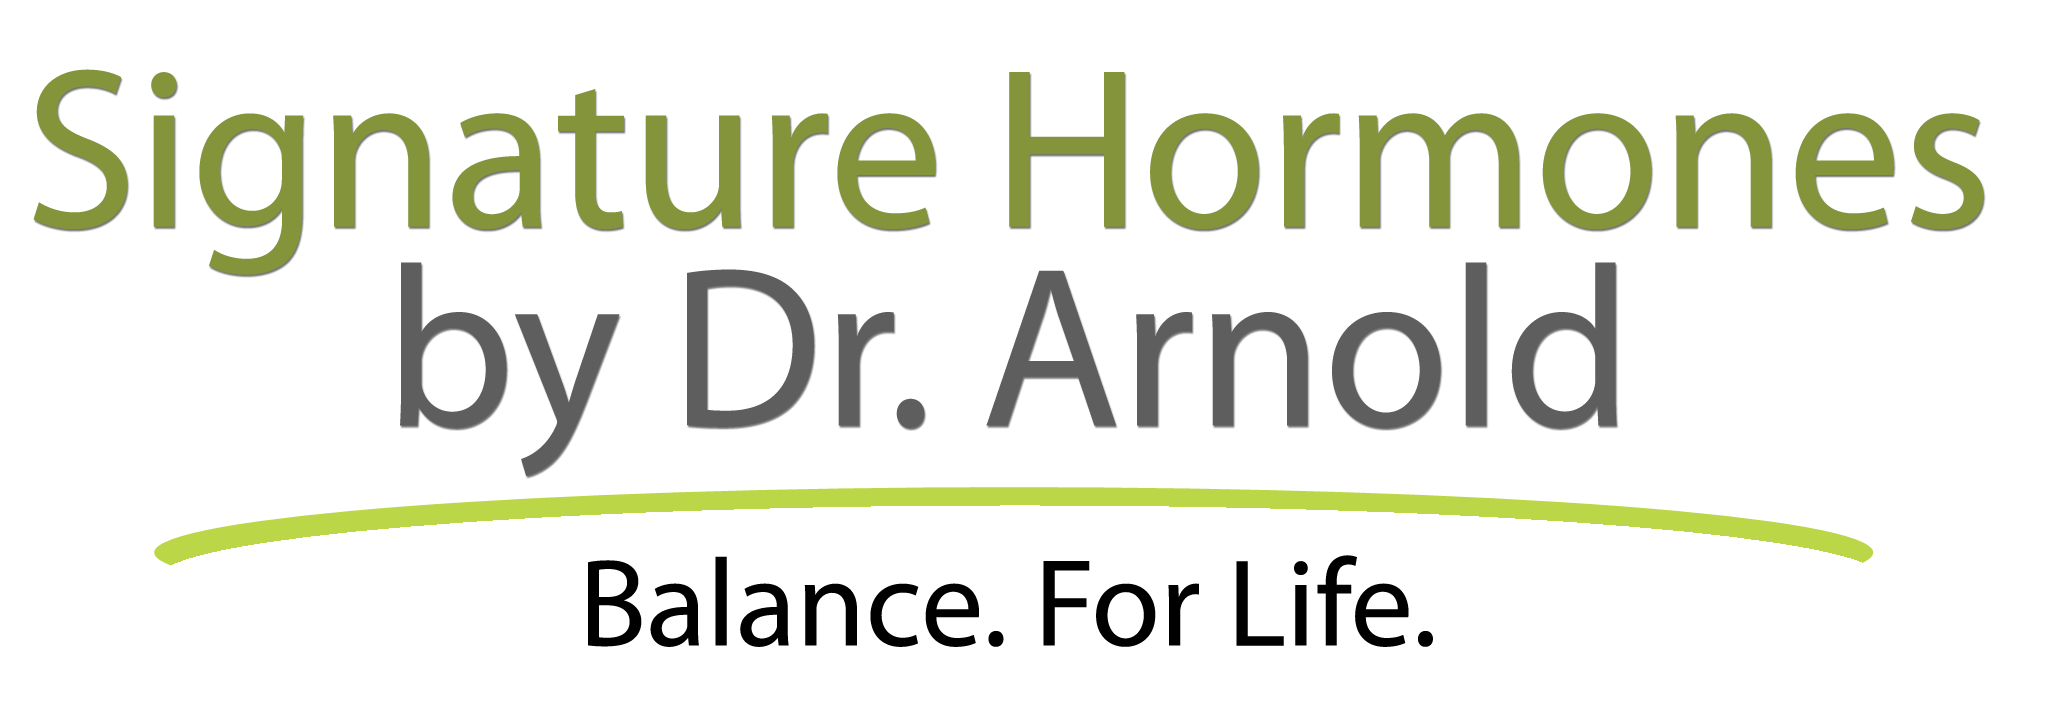 Signature Hormones by Dr. Arnold